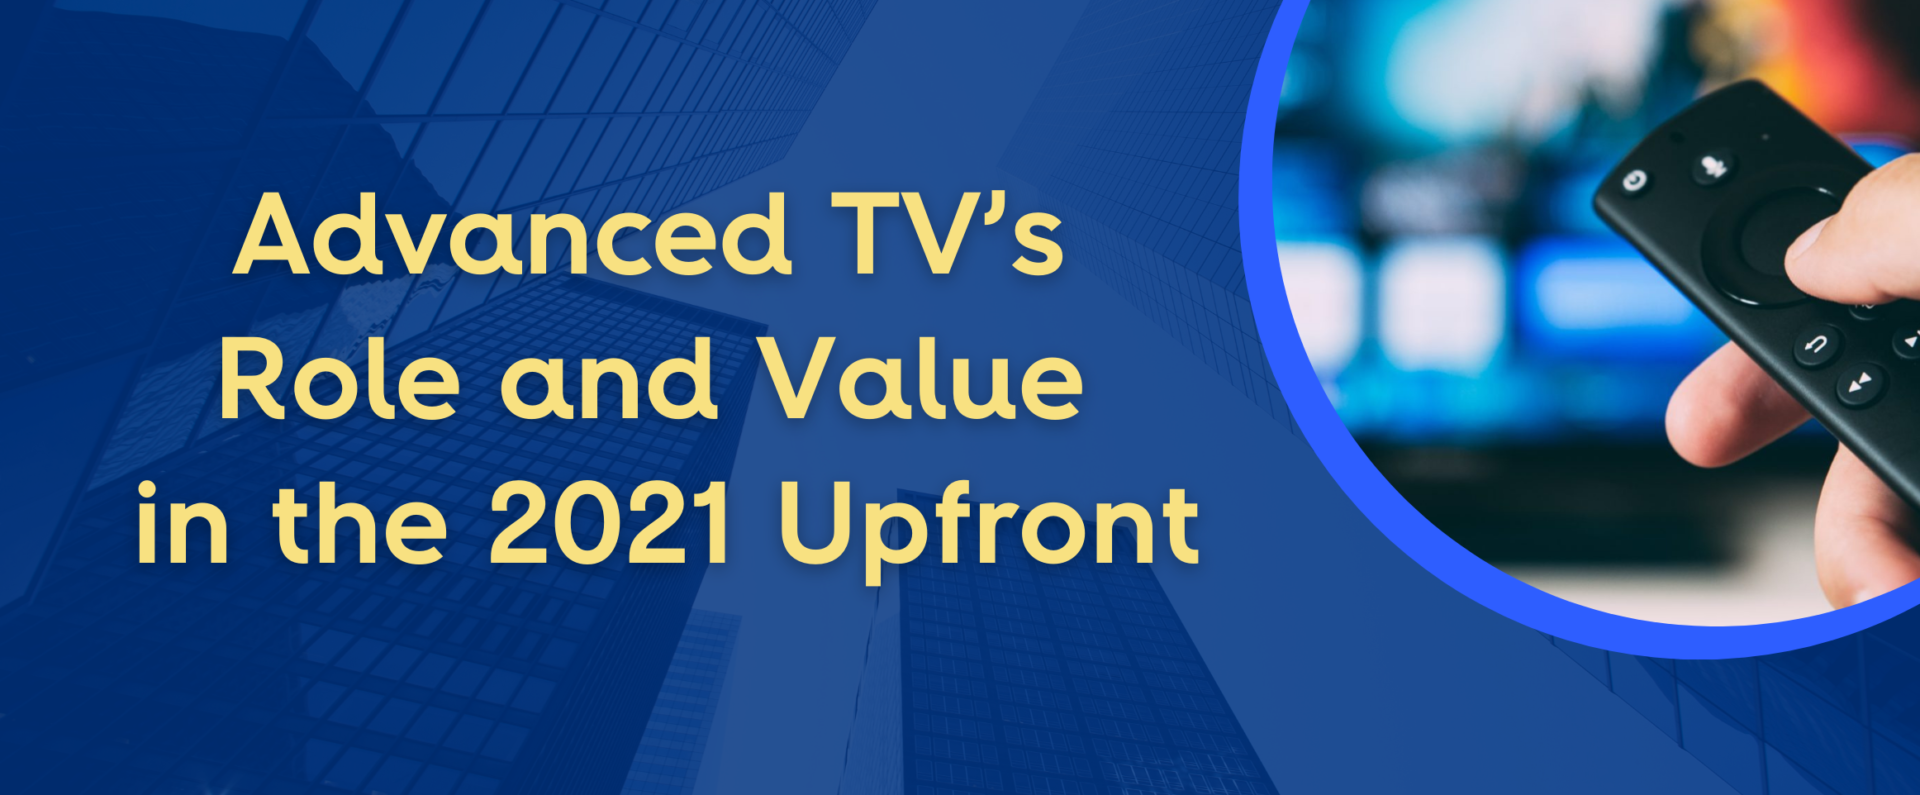 a4 Advertising's Hasan Rahim on Advanced TV's Role and Value in the 2021 Upfront